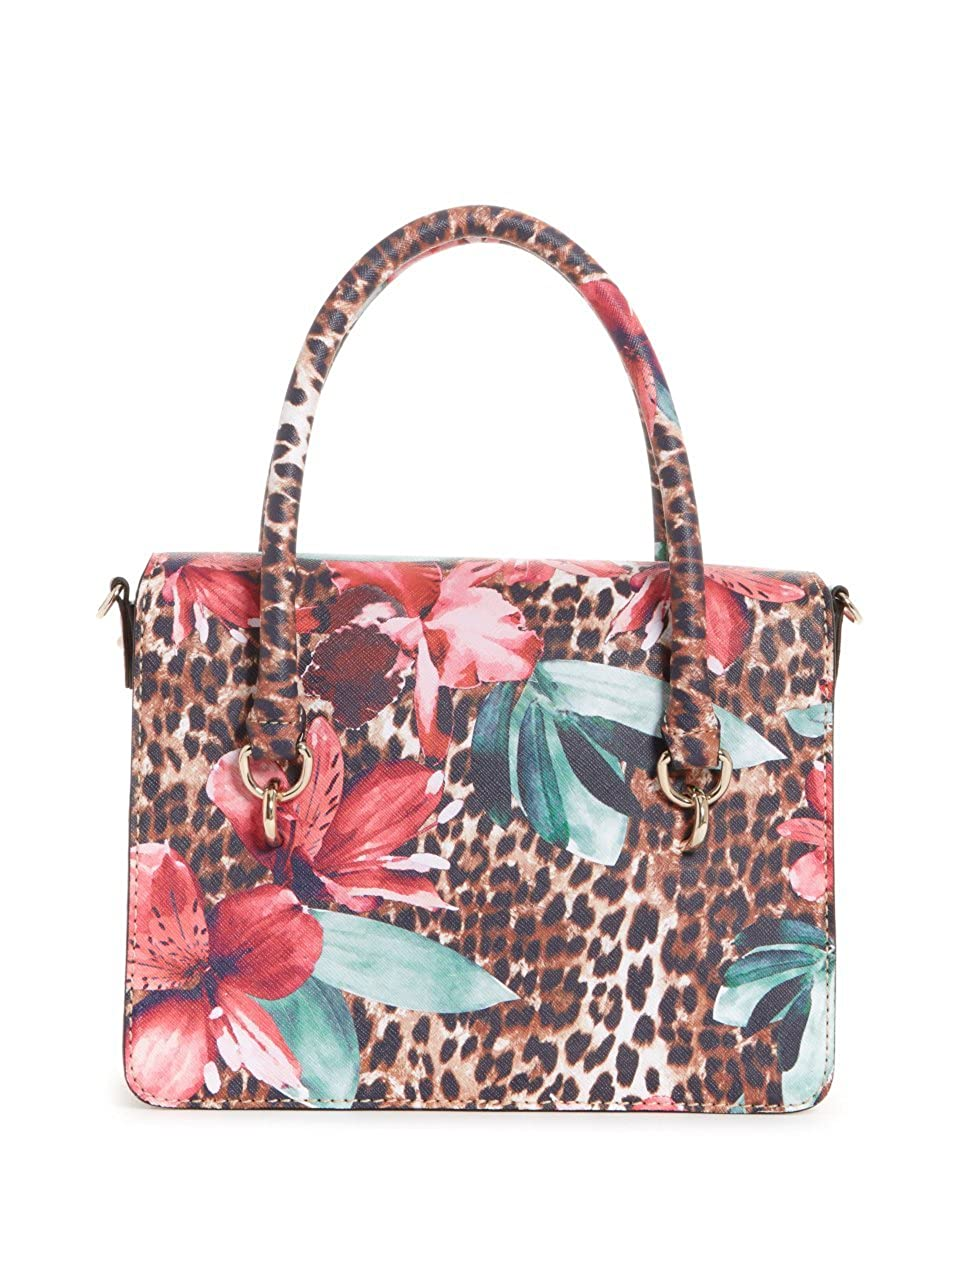 Amazon.com  GUESS Orchid Leopard Printed Satchel Crossbody Bag  Clothing 975a6f0a61ac6